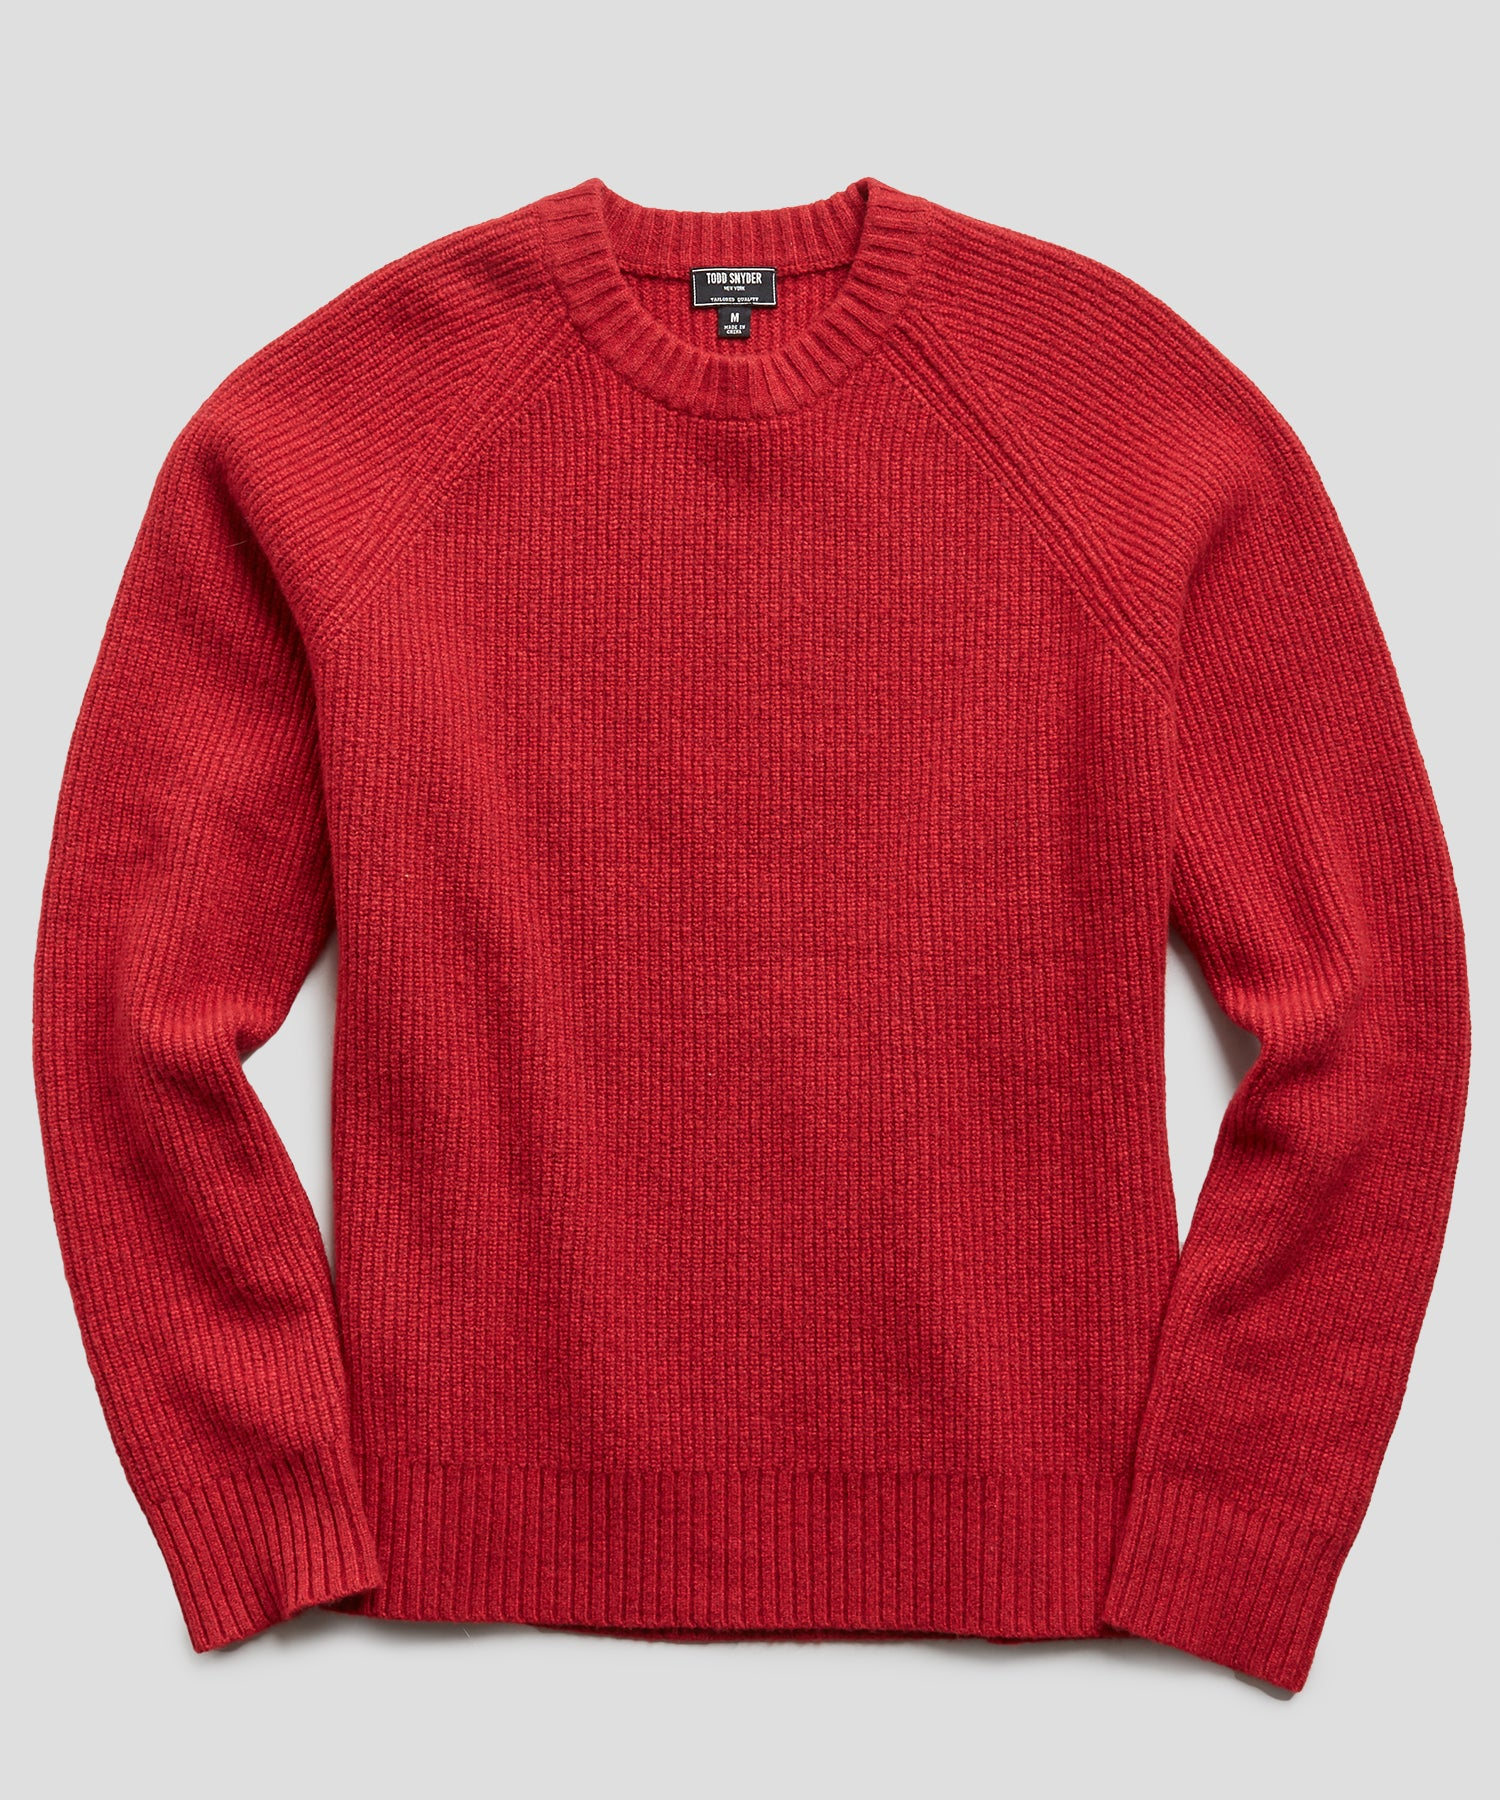 Italian Ribbed Raglan Crew in Red